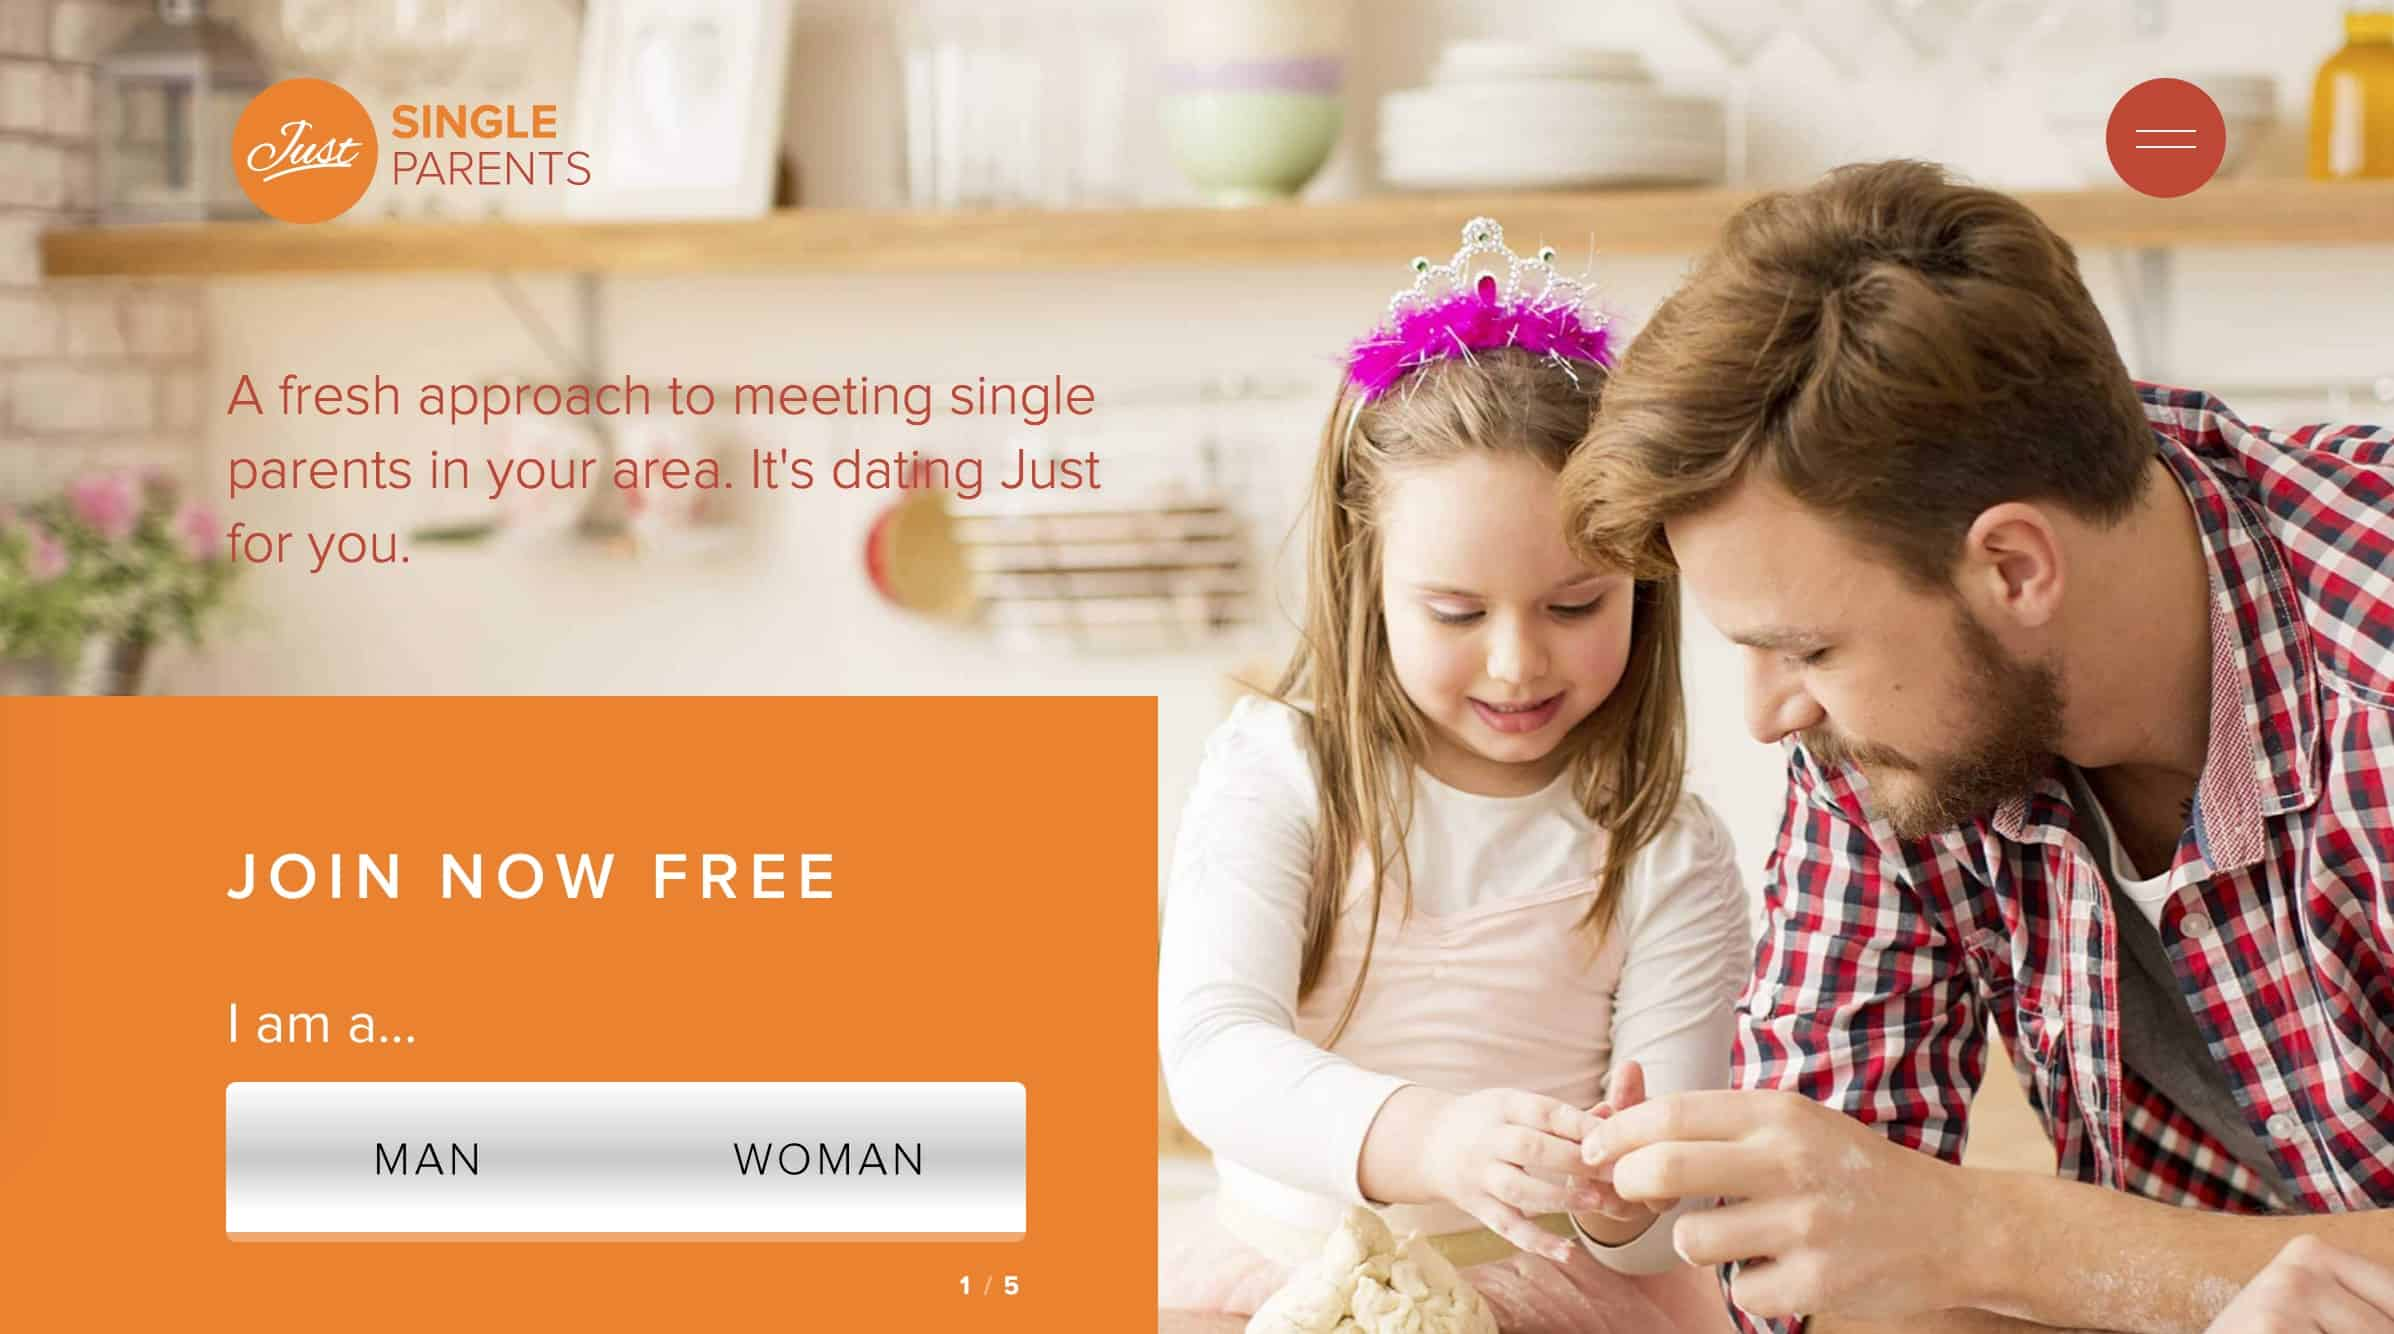 Dating sites for single parents reviews